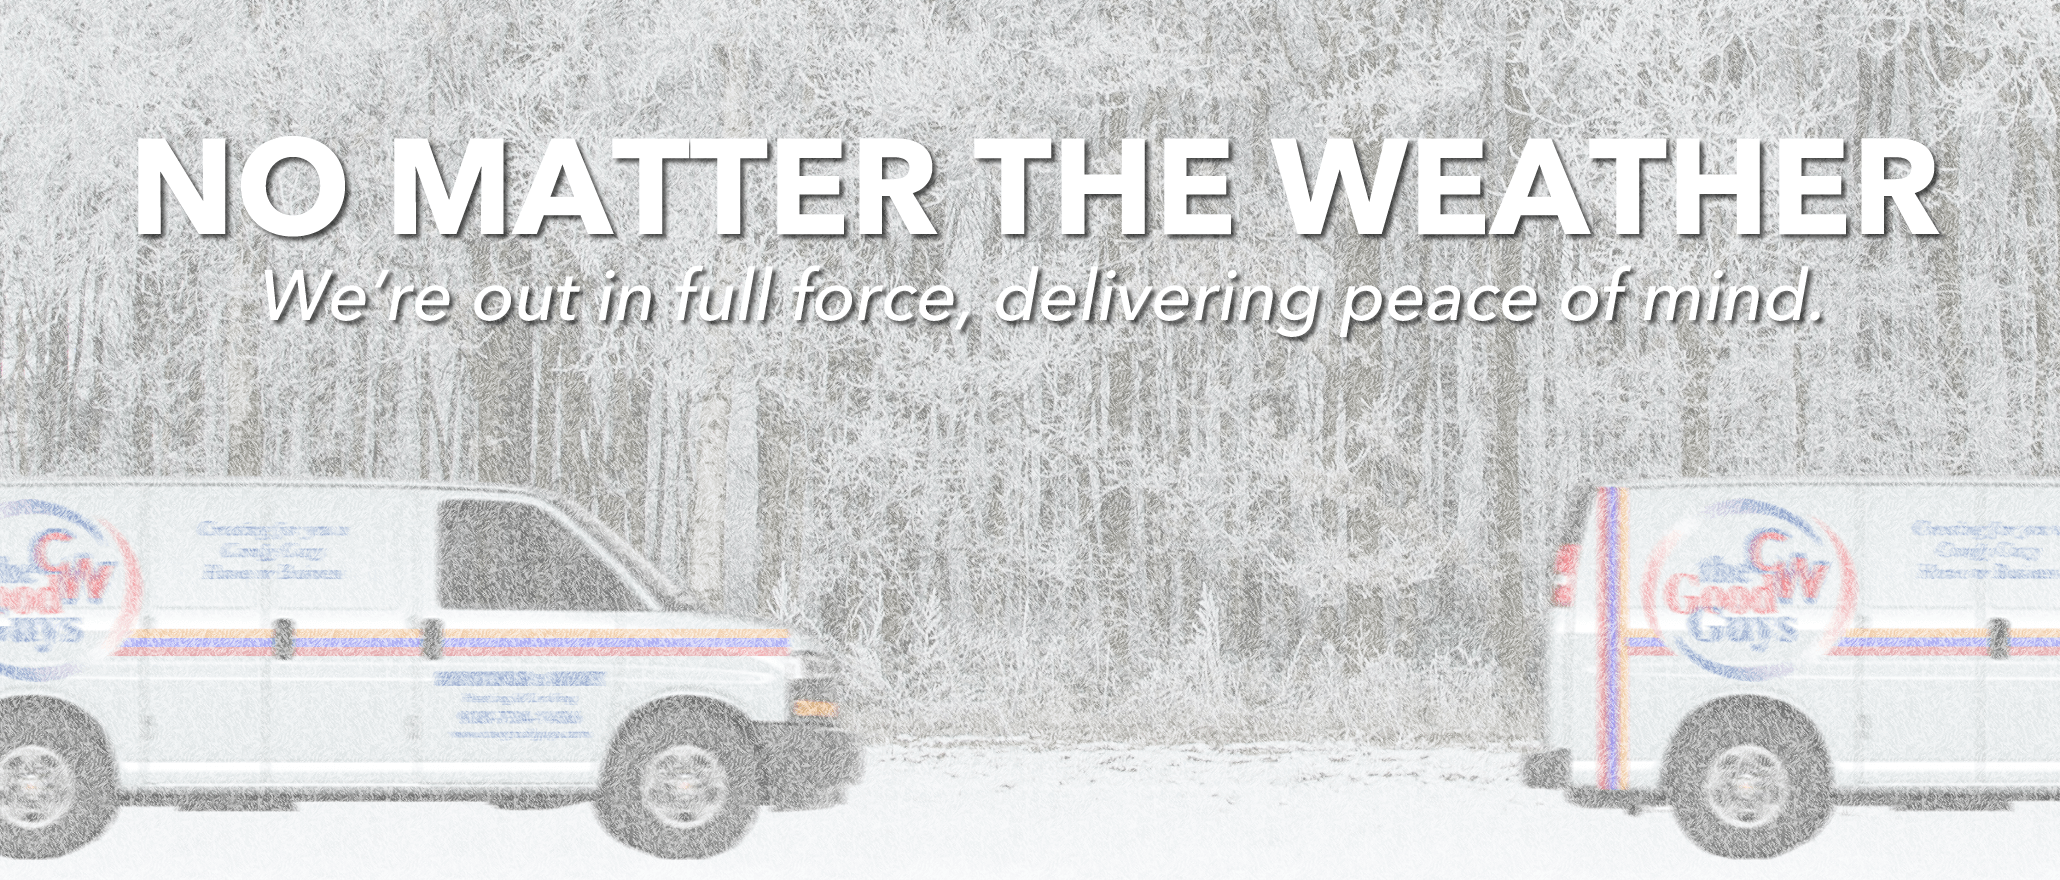 No matter the weather. We're out in full force, delivering peace of mind.